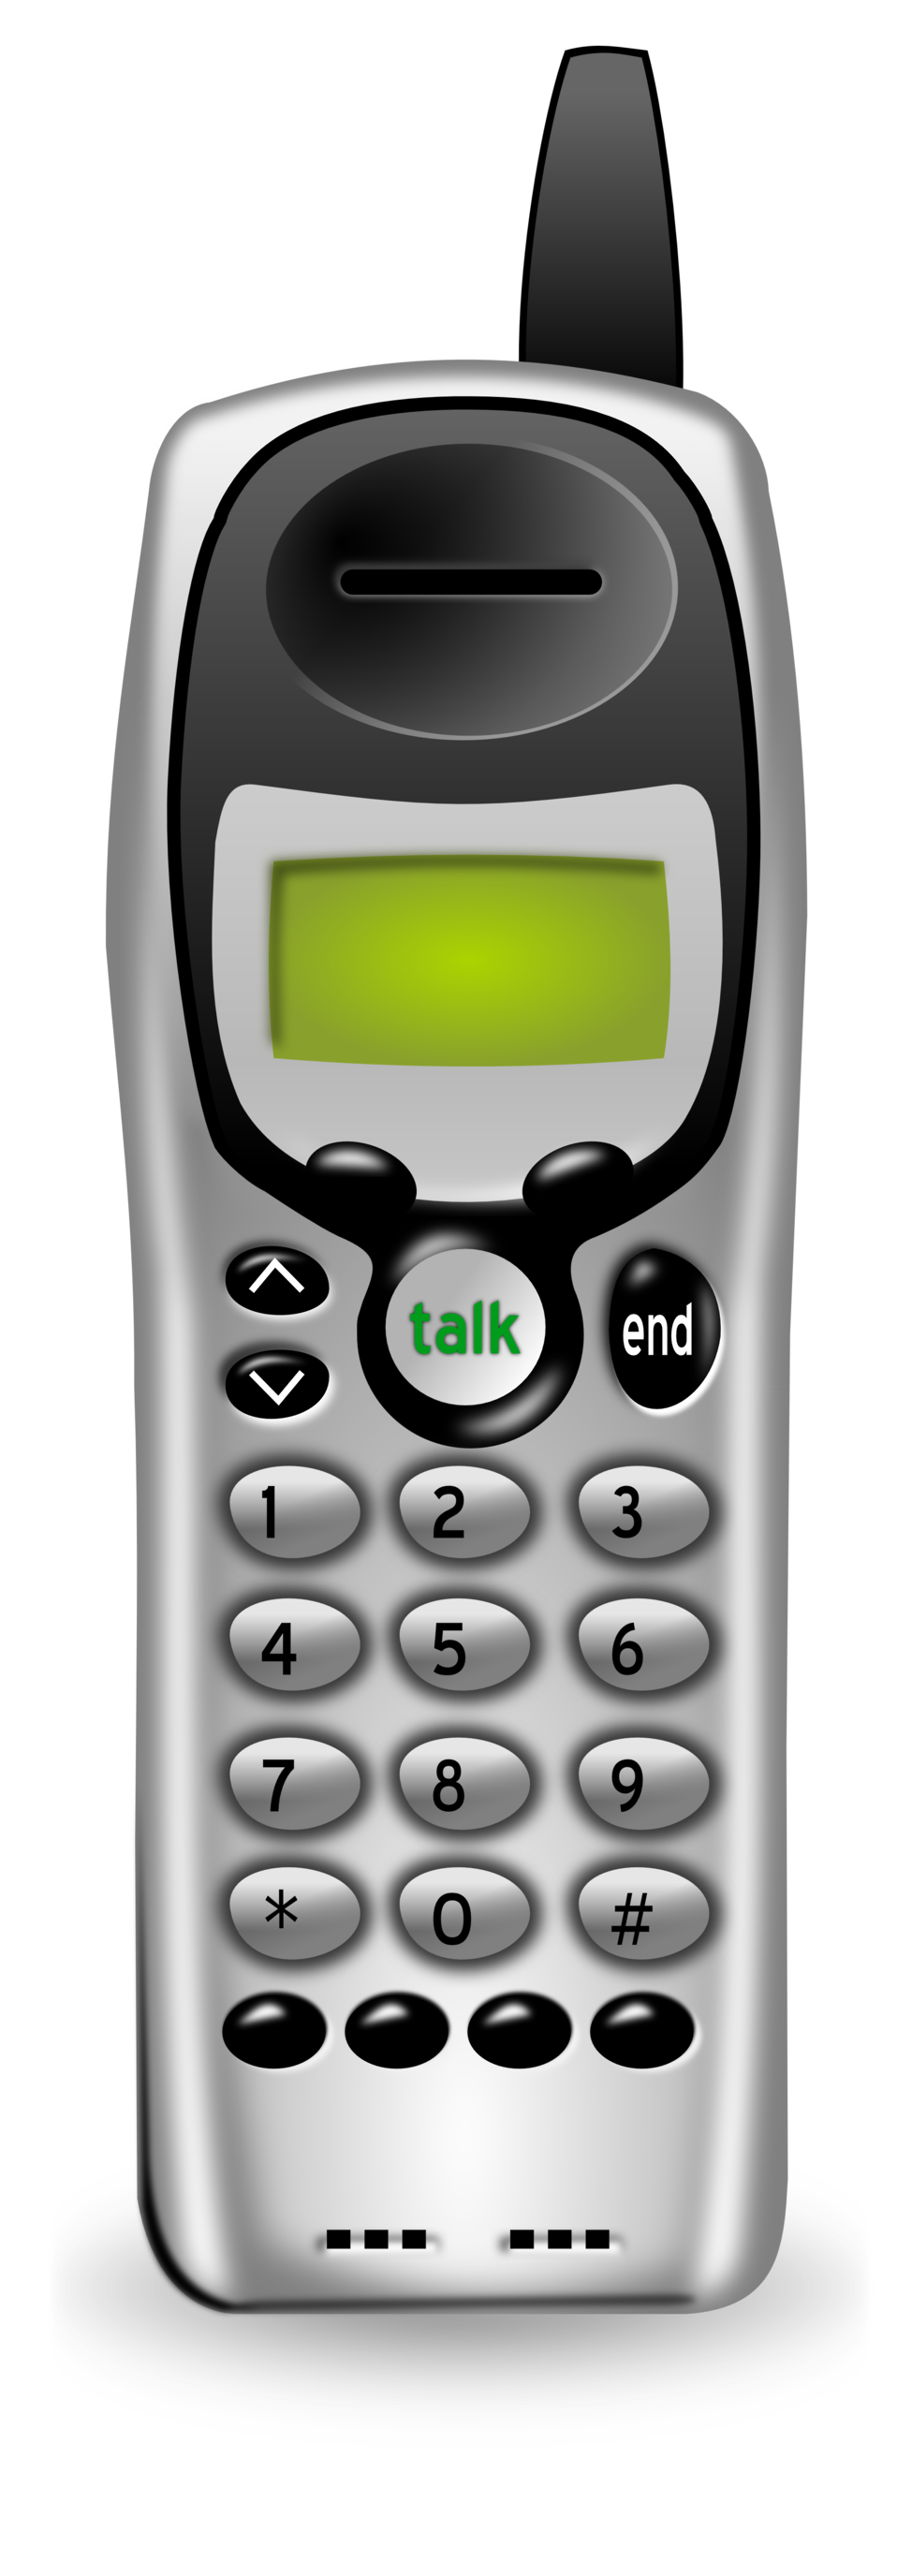 Telephone clipart cordless telephone. Public domain clip art